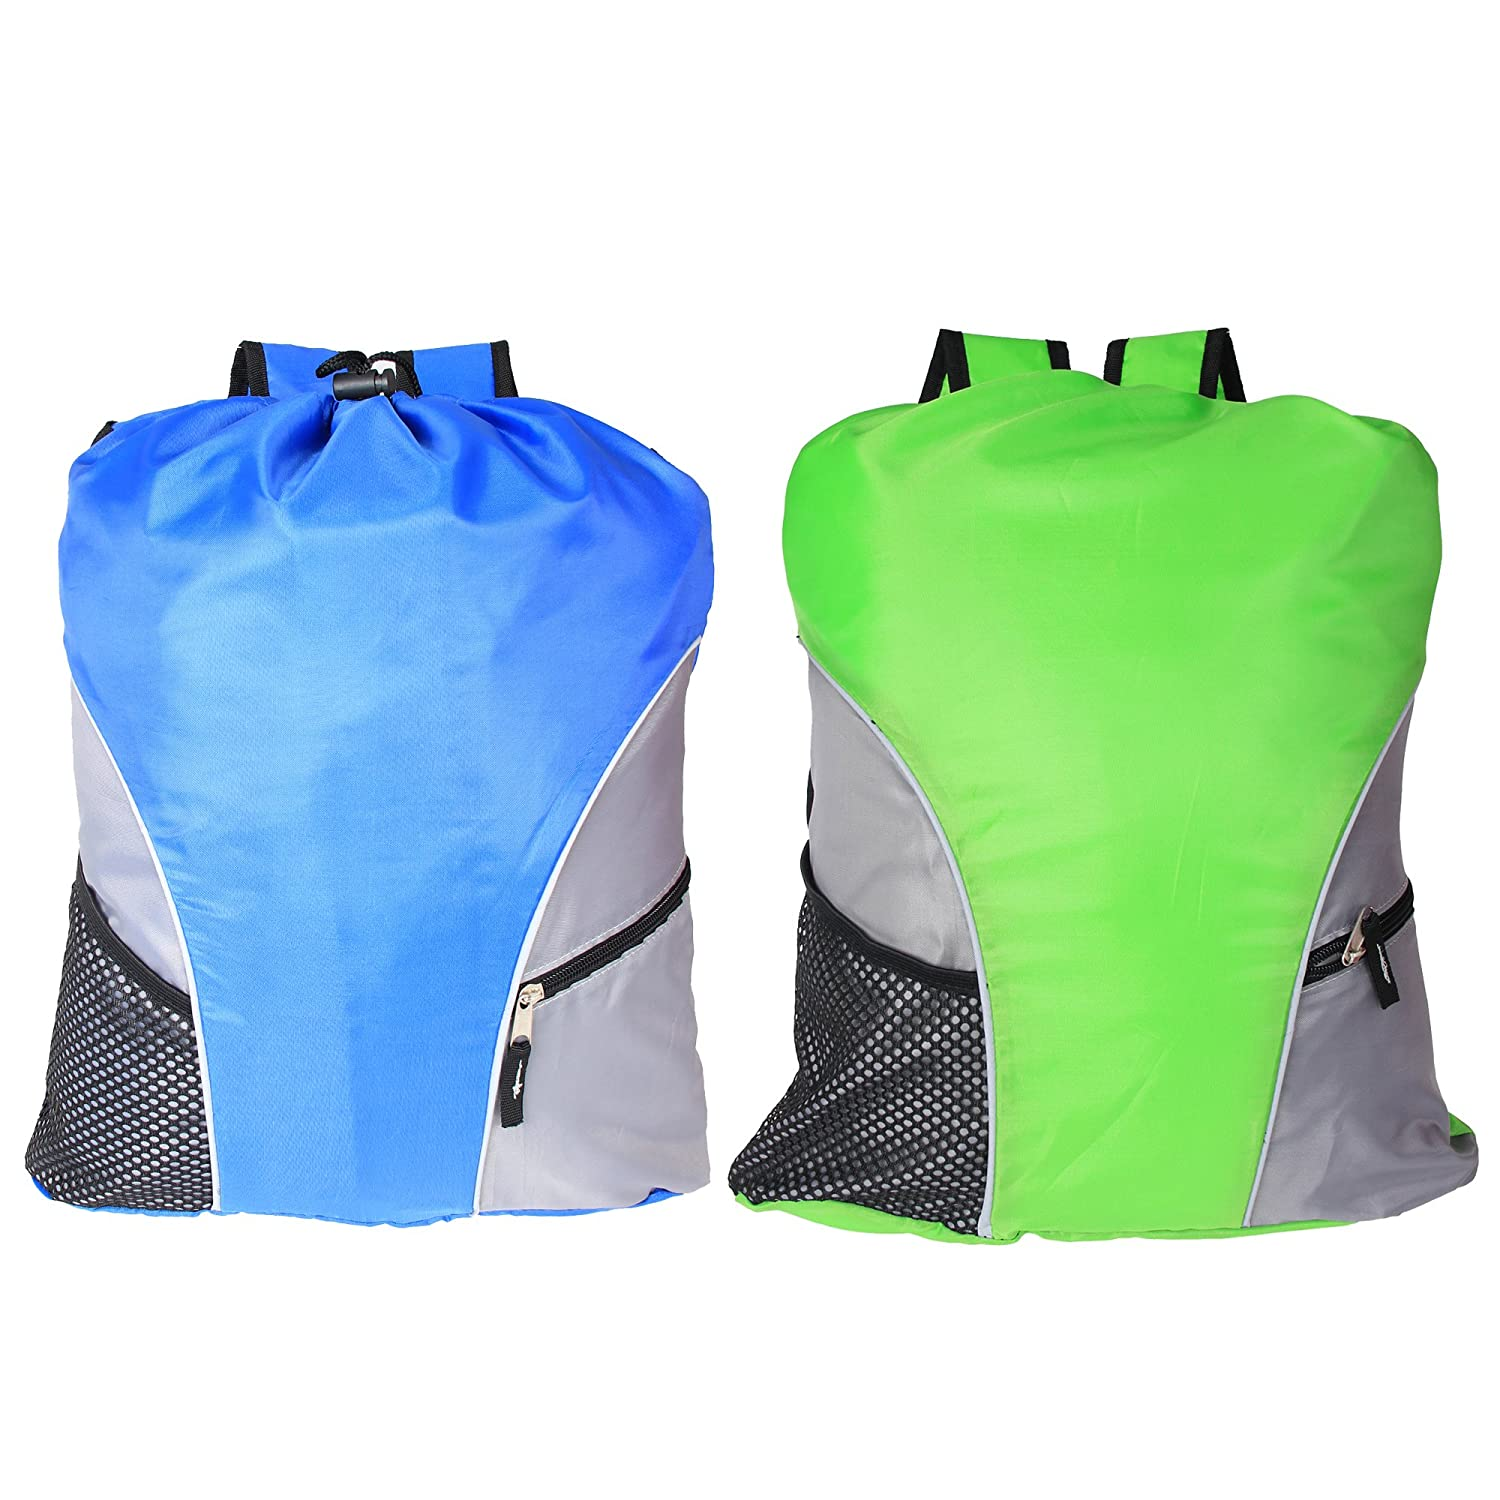 Damero 2Pcs Pack Lightweight Drawstring Sackpack with Straps ... d4ca01a02f202